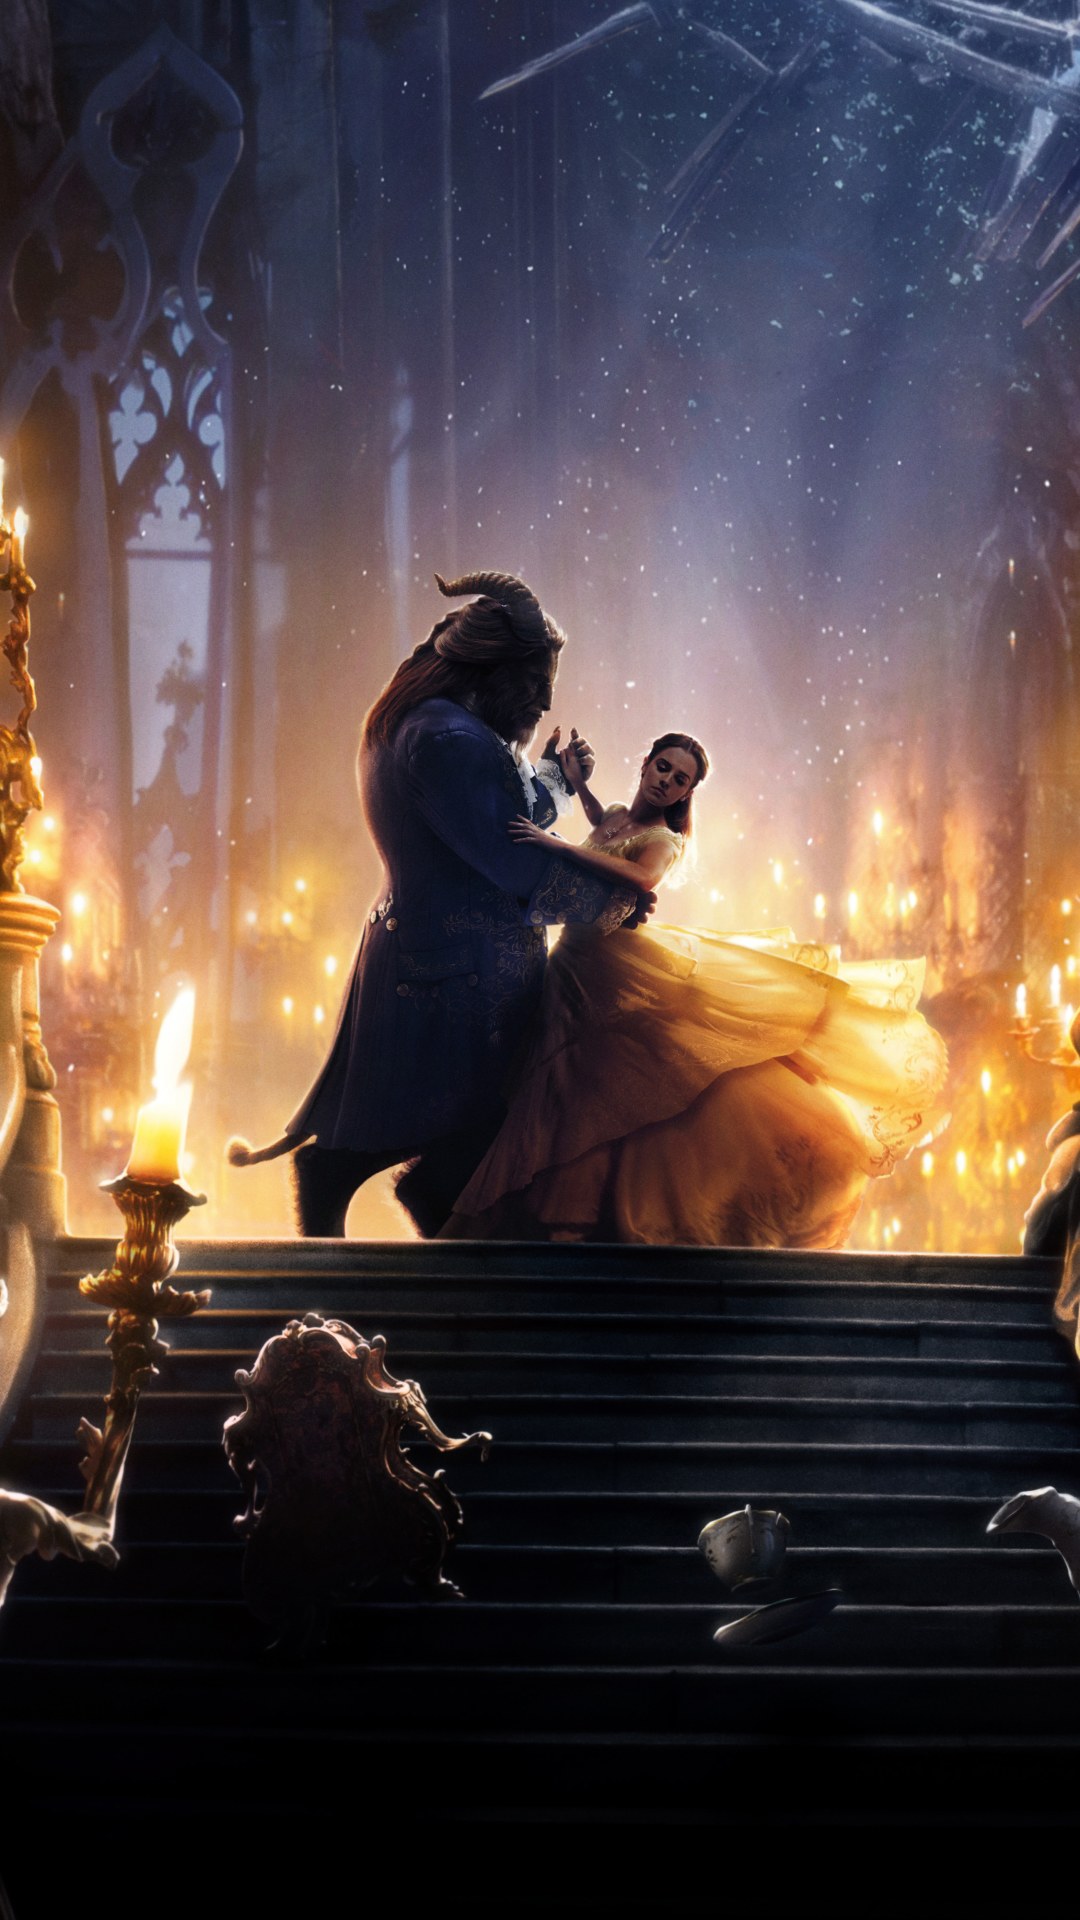 beauty and beast wallpapers free: Download Beauty And The Beast Iphone Wallpaper Gallery